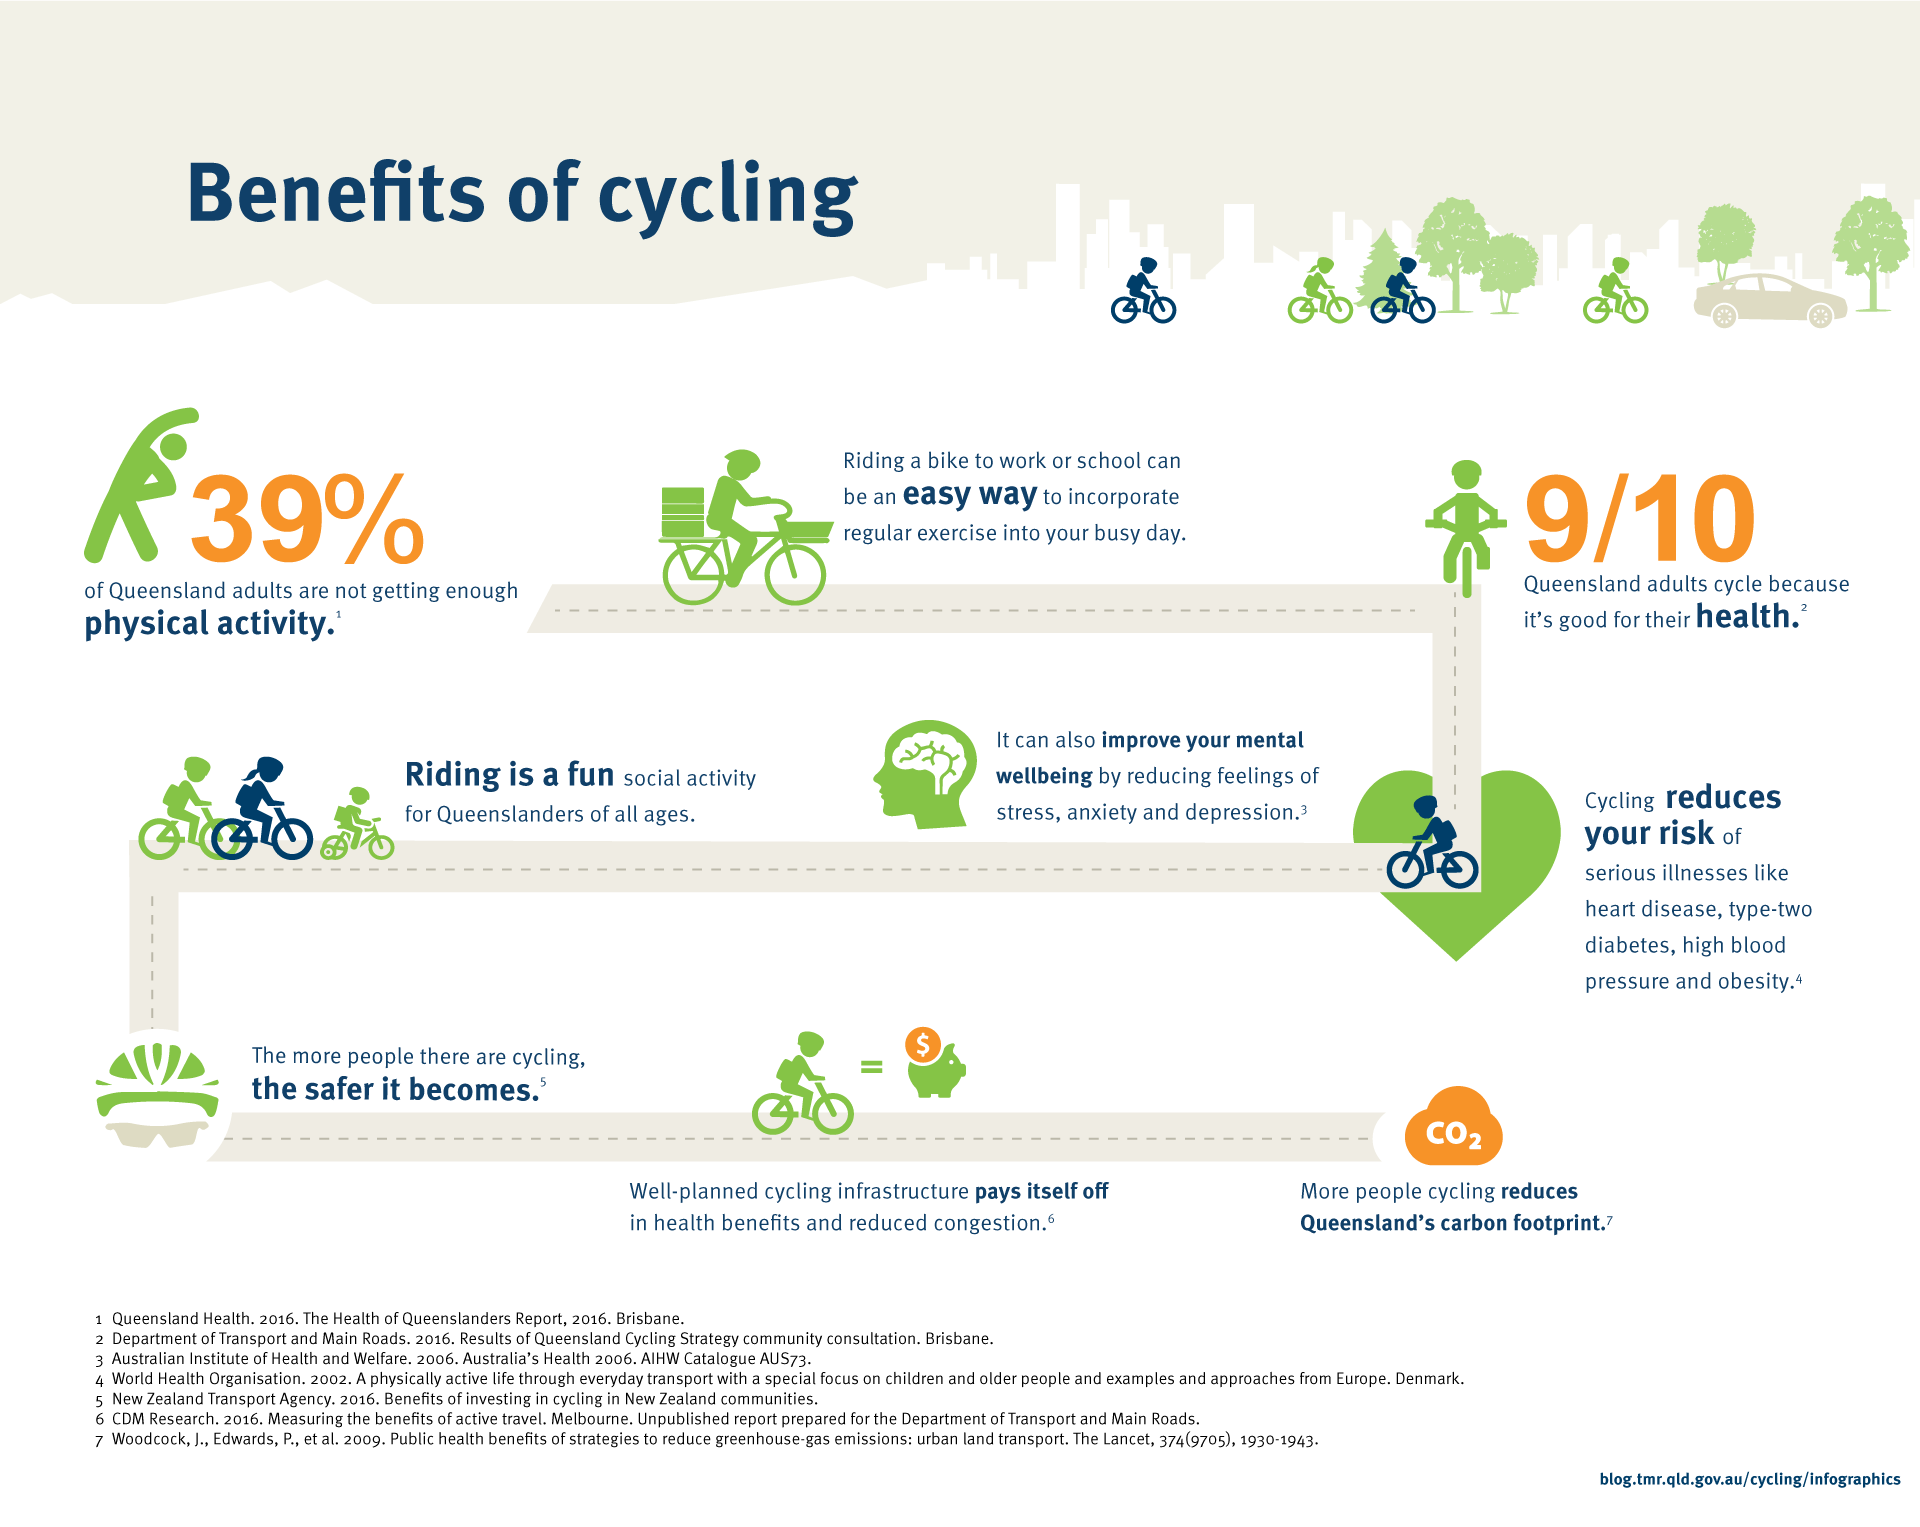 The Benefits of Cycling. 39% of Queensland adults are not getting enough physical activity. Riding a bike to work or school can be an easy way to incorporate regular exercise into your busy day. Nine out of ten adults cycle because it's good for their health. Riding is a fun social activity for Queenslanders of all ages. It can also improve your mental wellbeing by reducing feelings of stress, anxiety and depression. Cycling reduces your risk of serious illnesses like heart disease, type-two diabetes, high blood pressure and obesity. The more people there are cycling, the safer it becomes. Well planned cycling infrastructure pays itself off in health benefits and reduced congestion. Queensland Health. 2016. The Health of Queenslanders Report, 2016. Brisbane. Department of Transport and Main Roads. 2016. Results of Queensland Cycling Strategy community consultation. Brisbane. Australian Institute of Health and Welfare. 2006. Australia's Health 2006. AIHW Catalogue AUS73. World Health Organisation. 2002. A physically active life through everyday transport with a special focus on children and older people and examples and approaches from Europe. Denmark. New Zealand Transport Agency. 2016. Benefits of investing in cycling in New Zealand communities. CDM Research. 2016. Measuring the benefits of active travel. Melbourne. Unpublished report prepared for the Department of Transport and Main Roads.More people cycling reduces Queensland's carbon footprint.